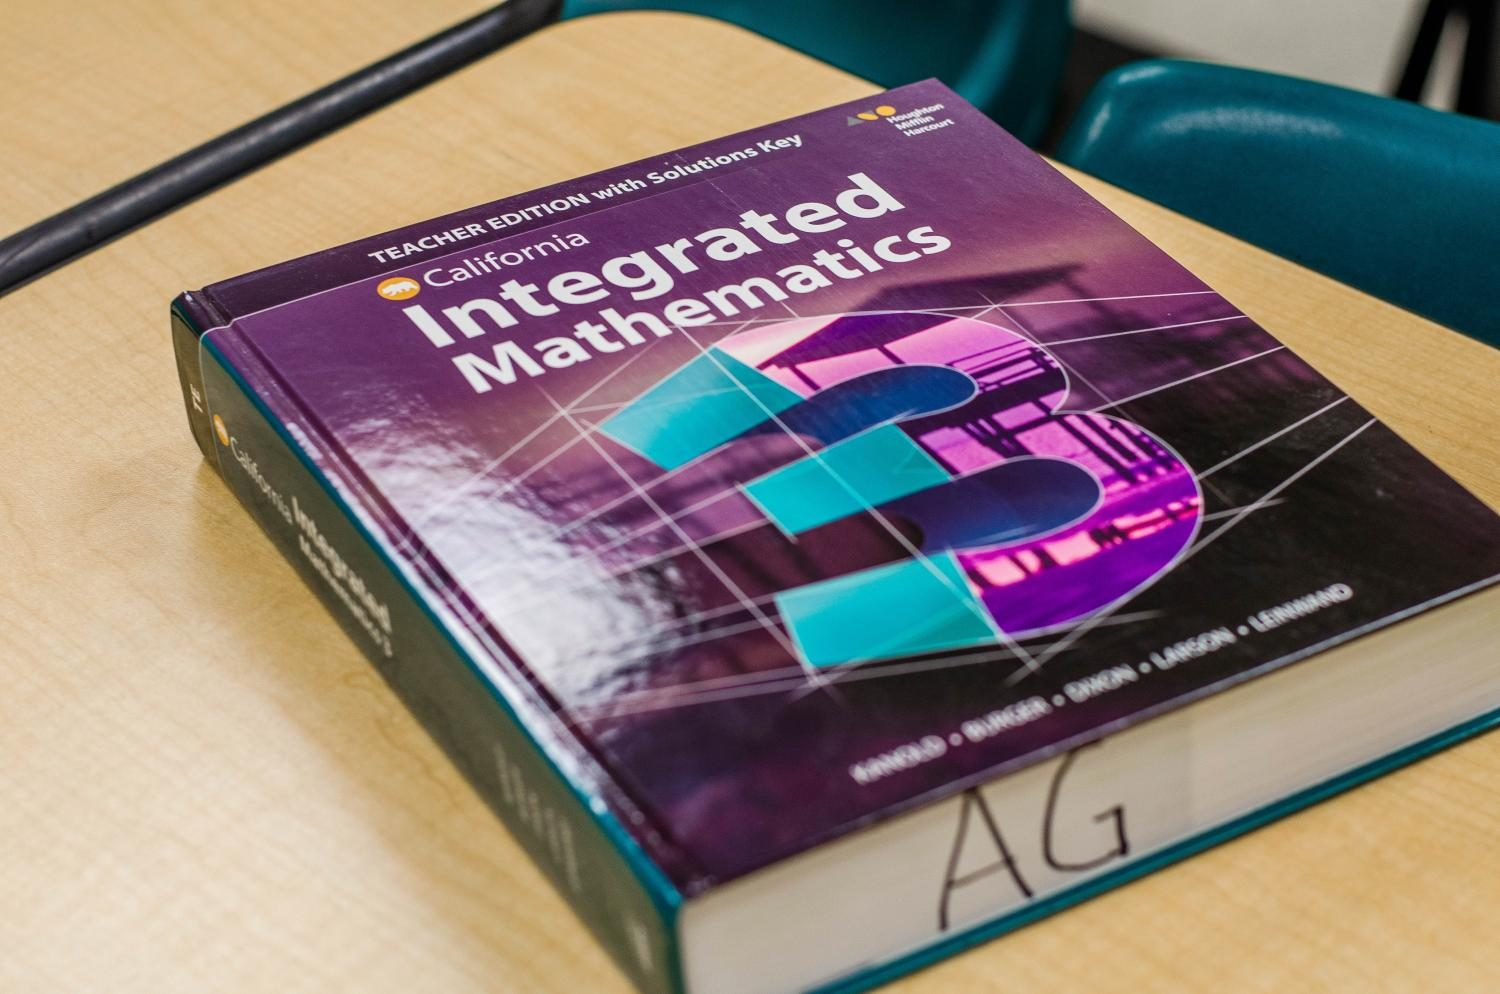 Math+textbook+that+teachers+are+planning+to+use+for+the+new+course%2C+Integrated+Math+3.